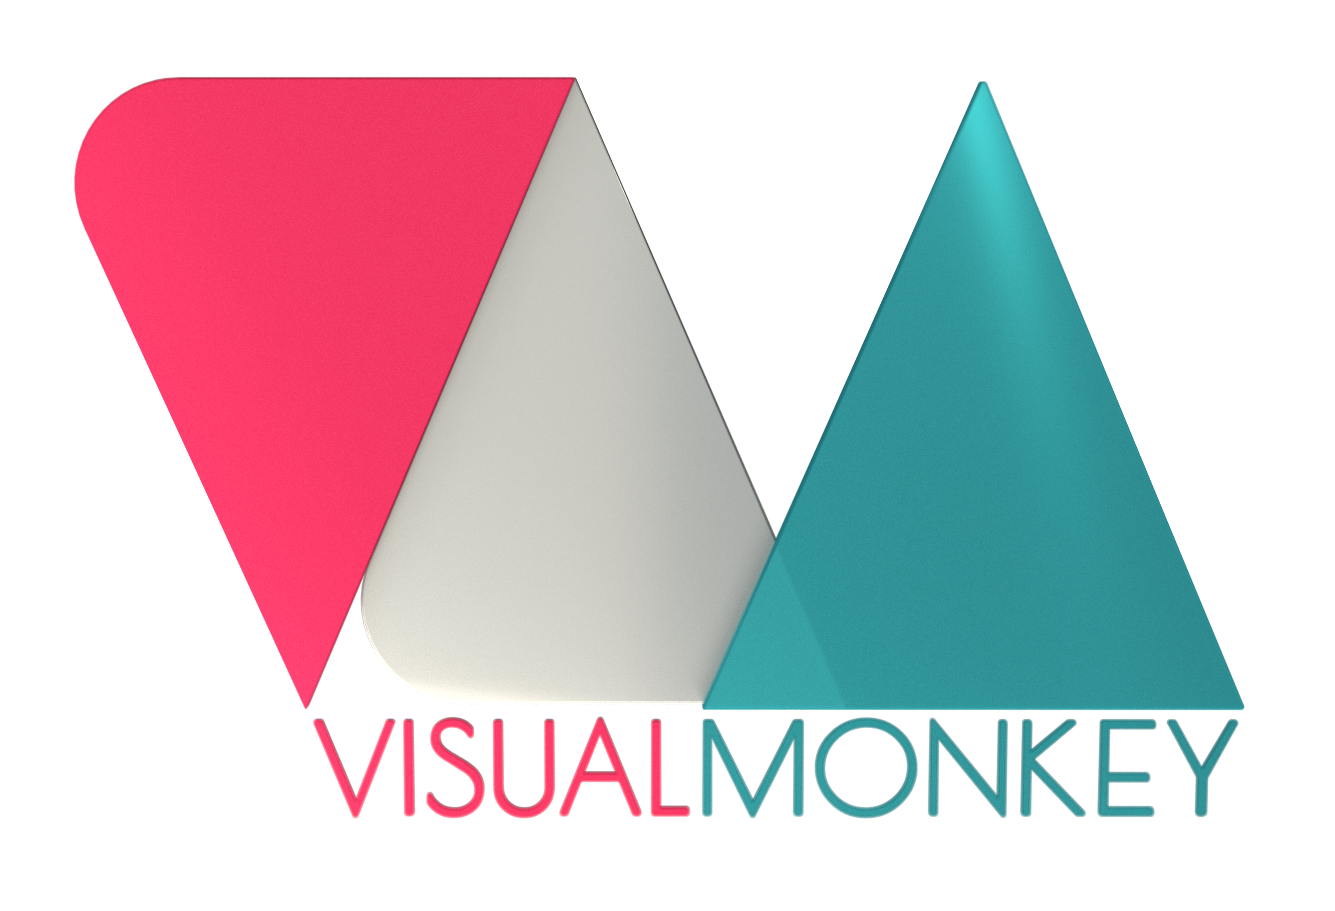 VISUAL MONKEY